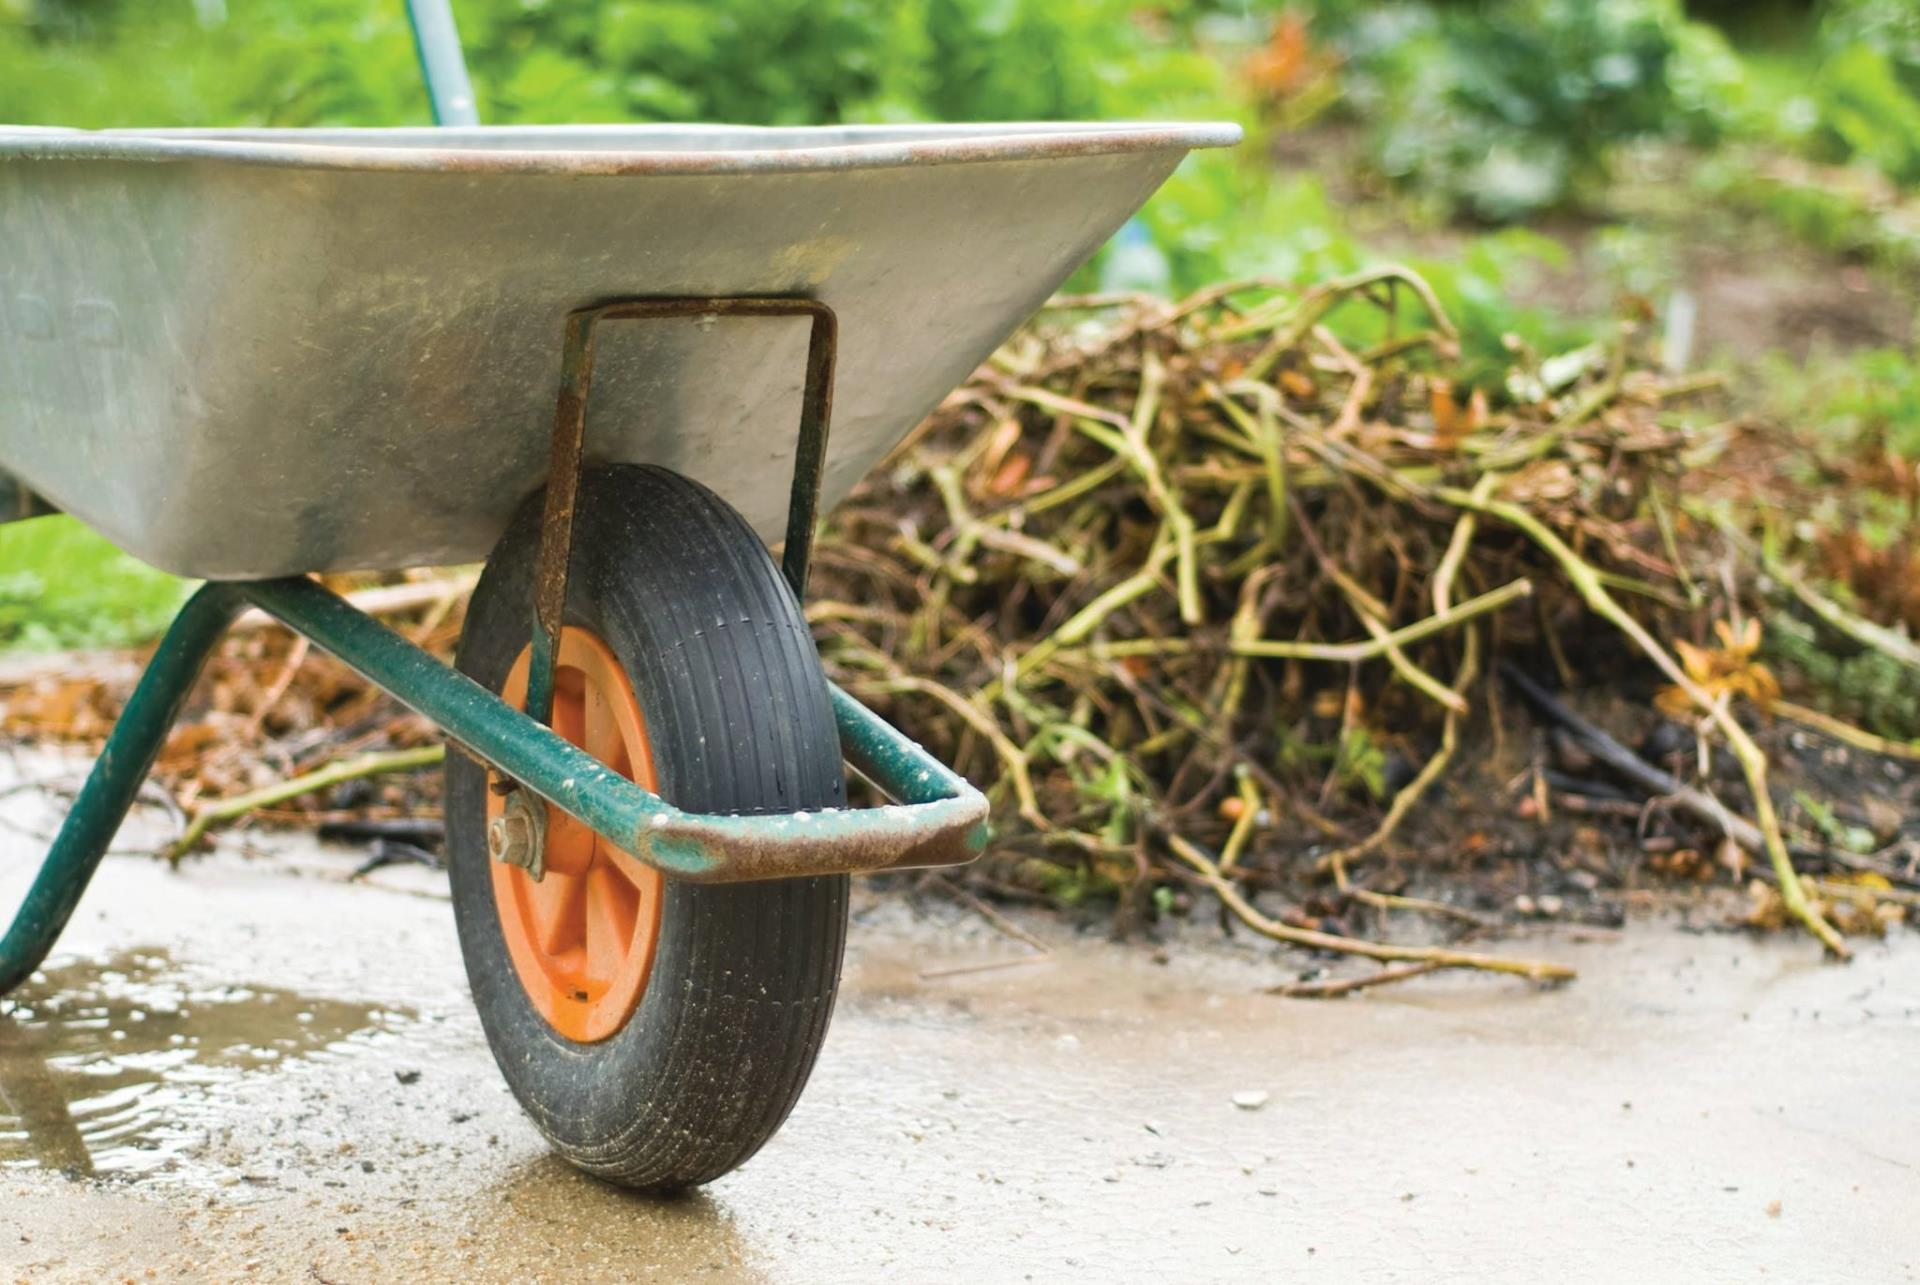 a wheelbarrow and yard waste